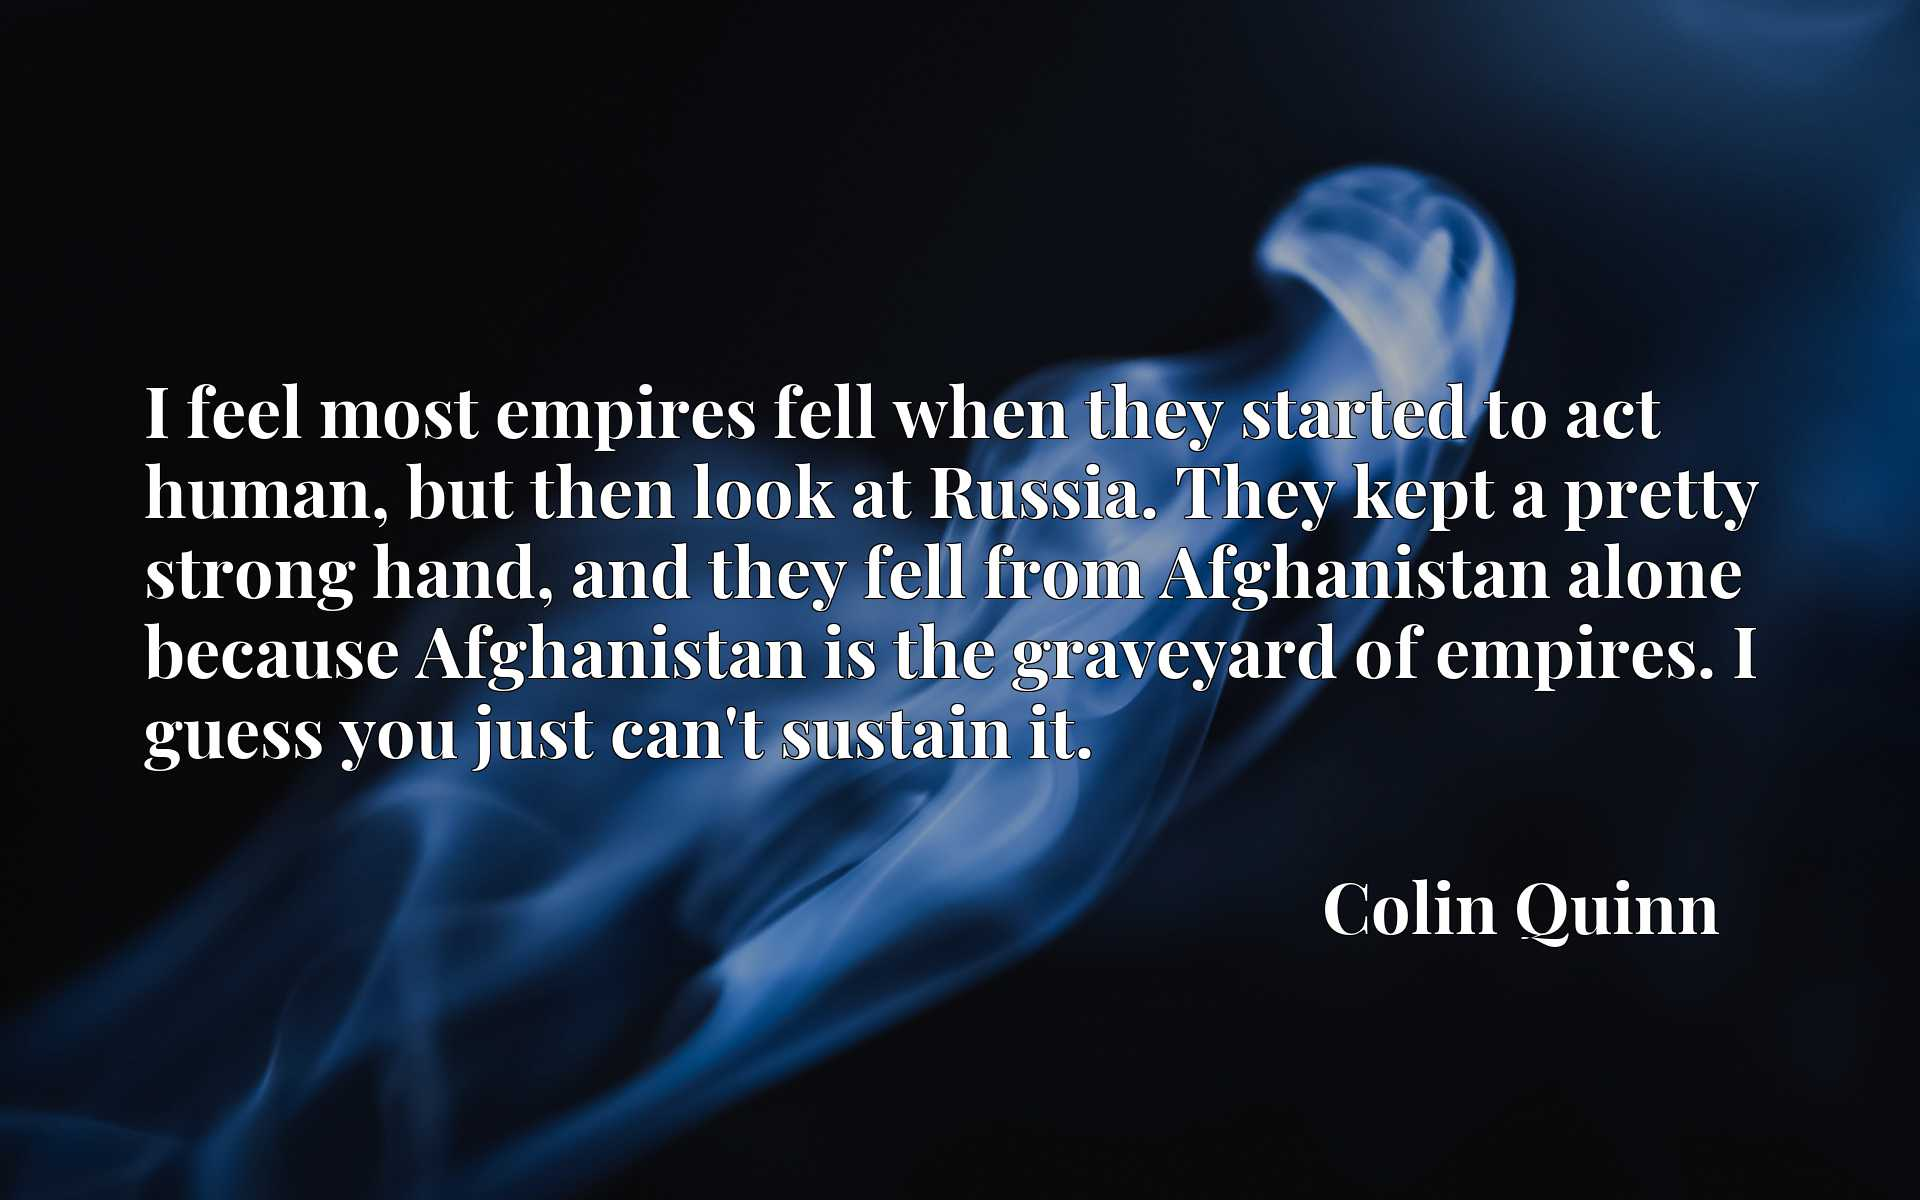 I feel most empires fell when they started to act human, but then look at Russia. They kept a pretty strong hand, and they fell from Afghanistan alone because Afghanistan is the graveyard of empires. I guess you just can't sustain it.